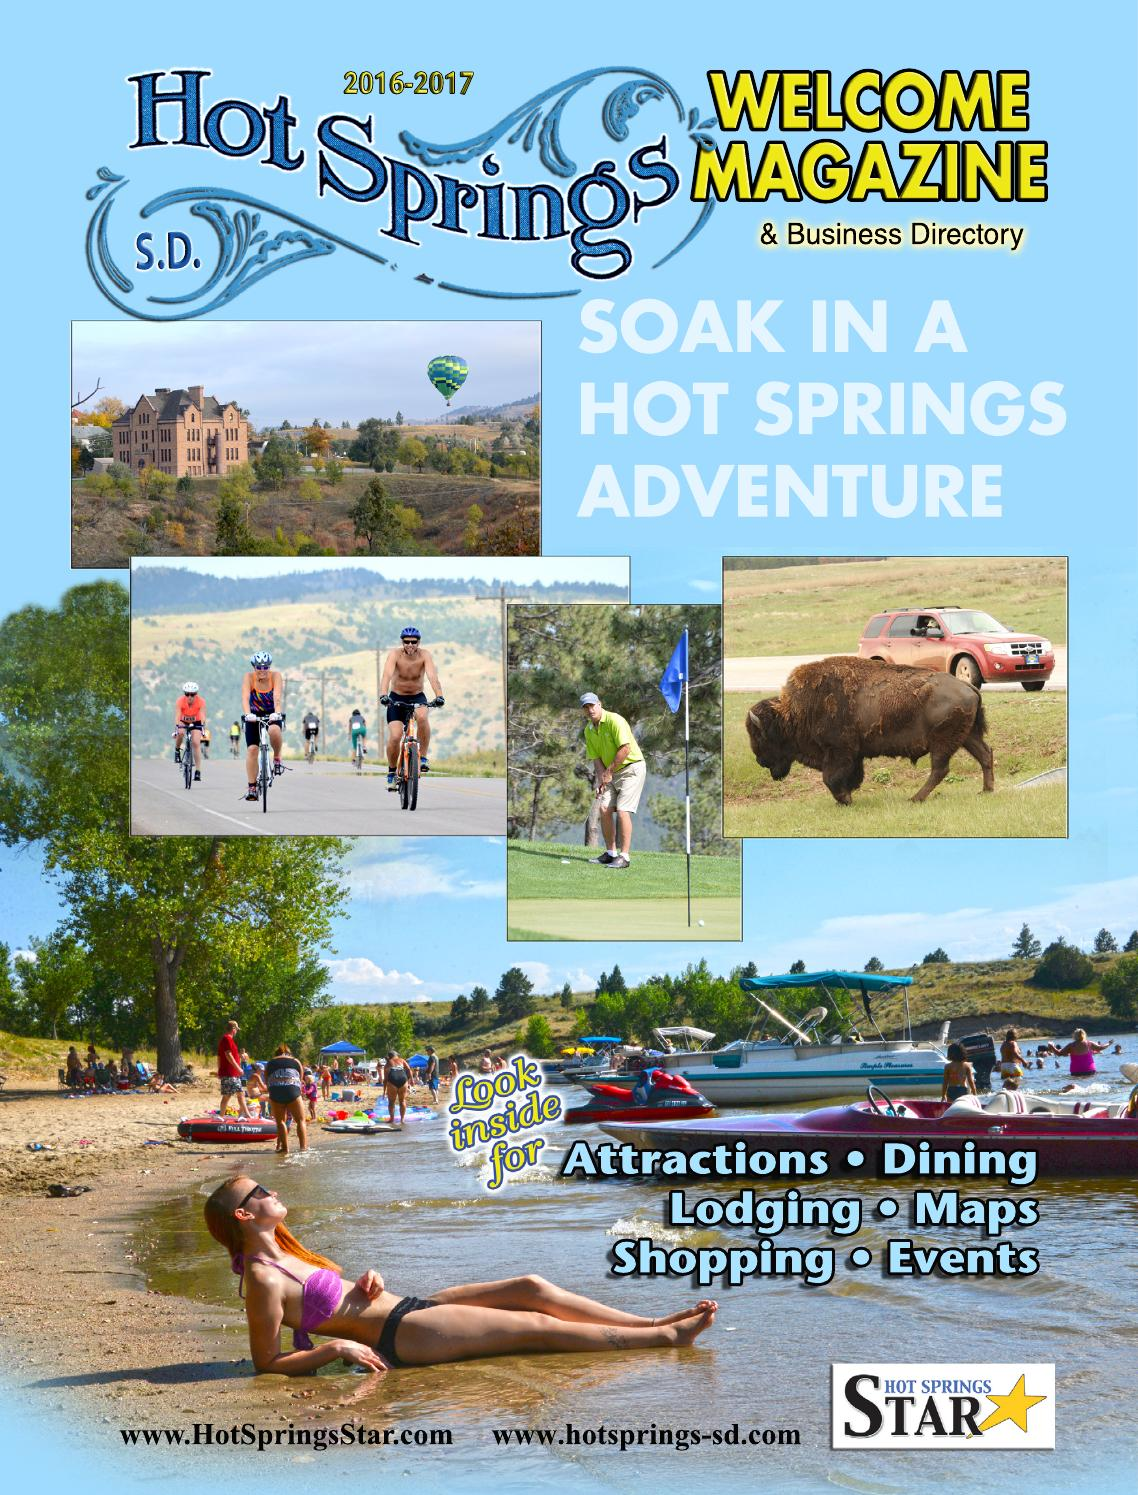 Hot springs welcome magazine 2016 by ernie wood issuu sciox Image collections